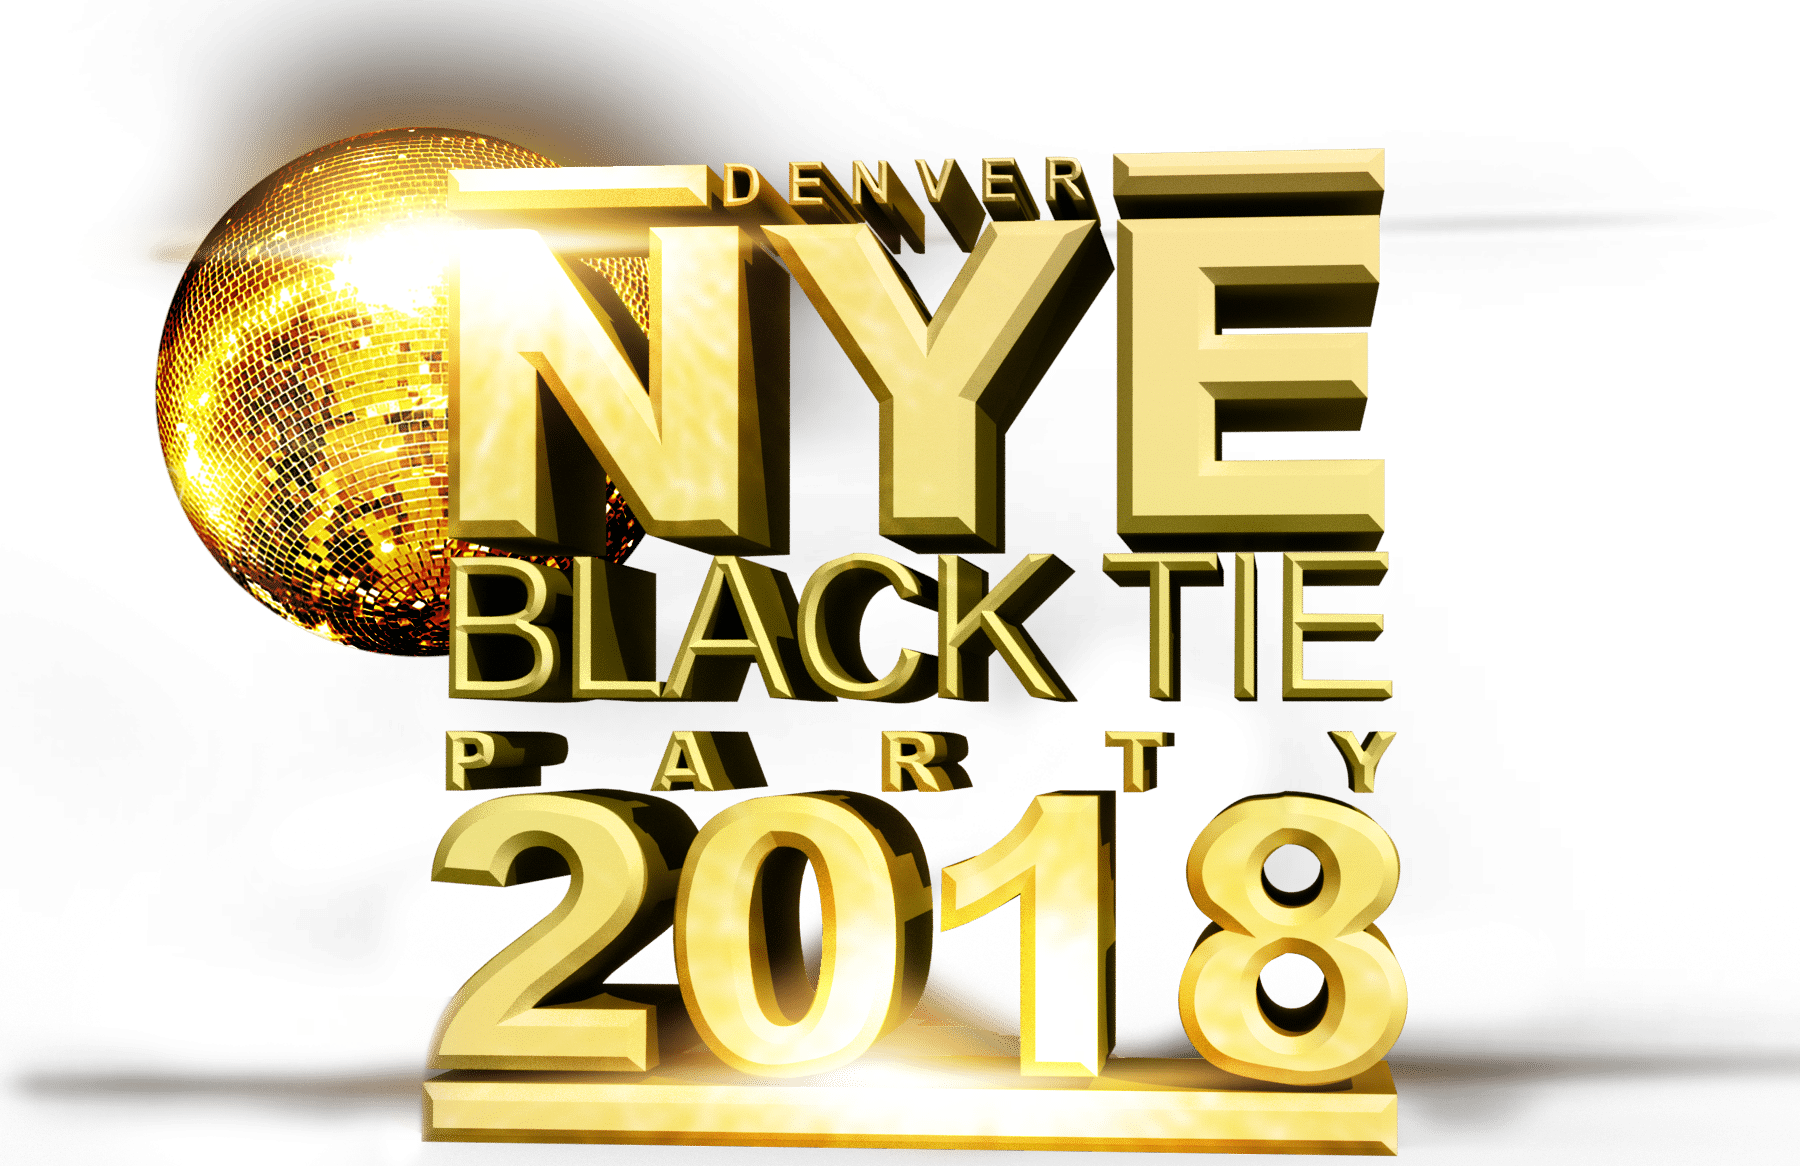 New Years Eve Denver | Denver New Years Eve Black Tie Party 2016 -2017